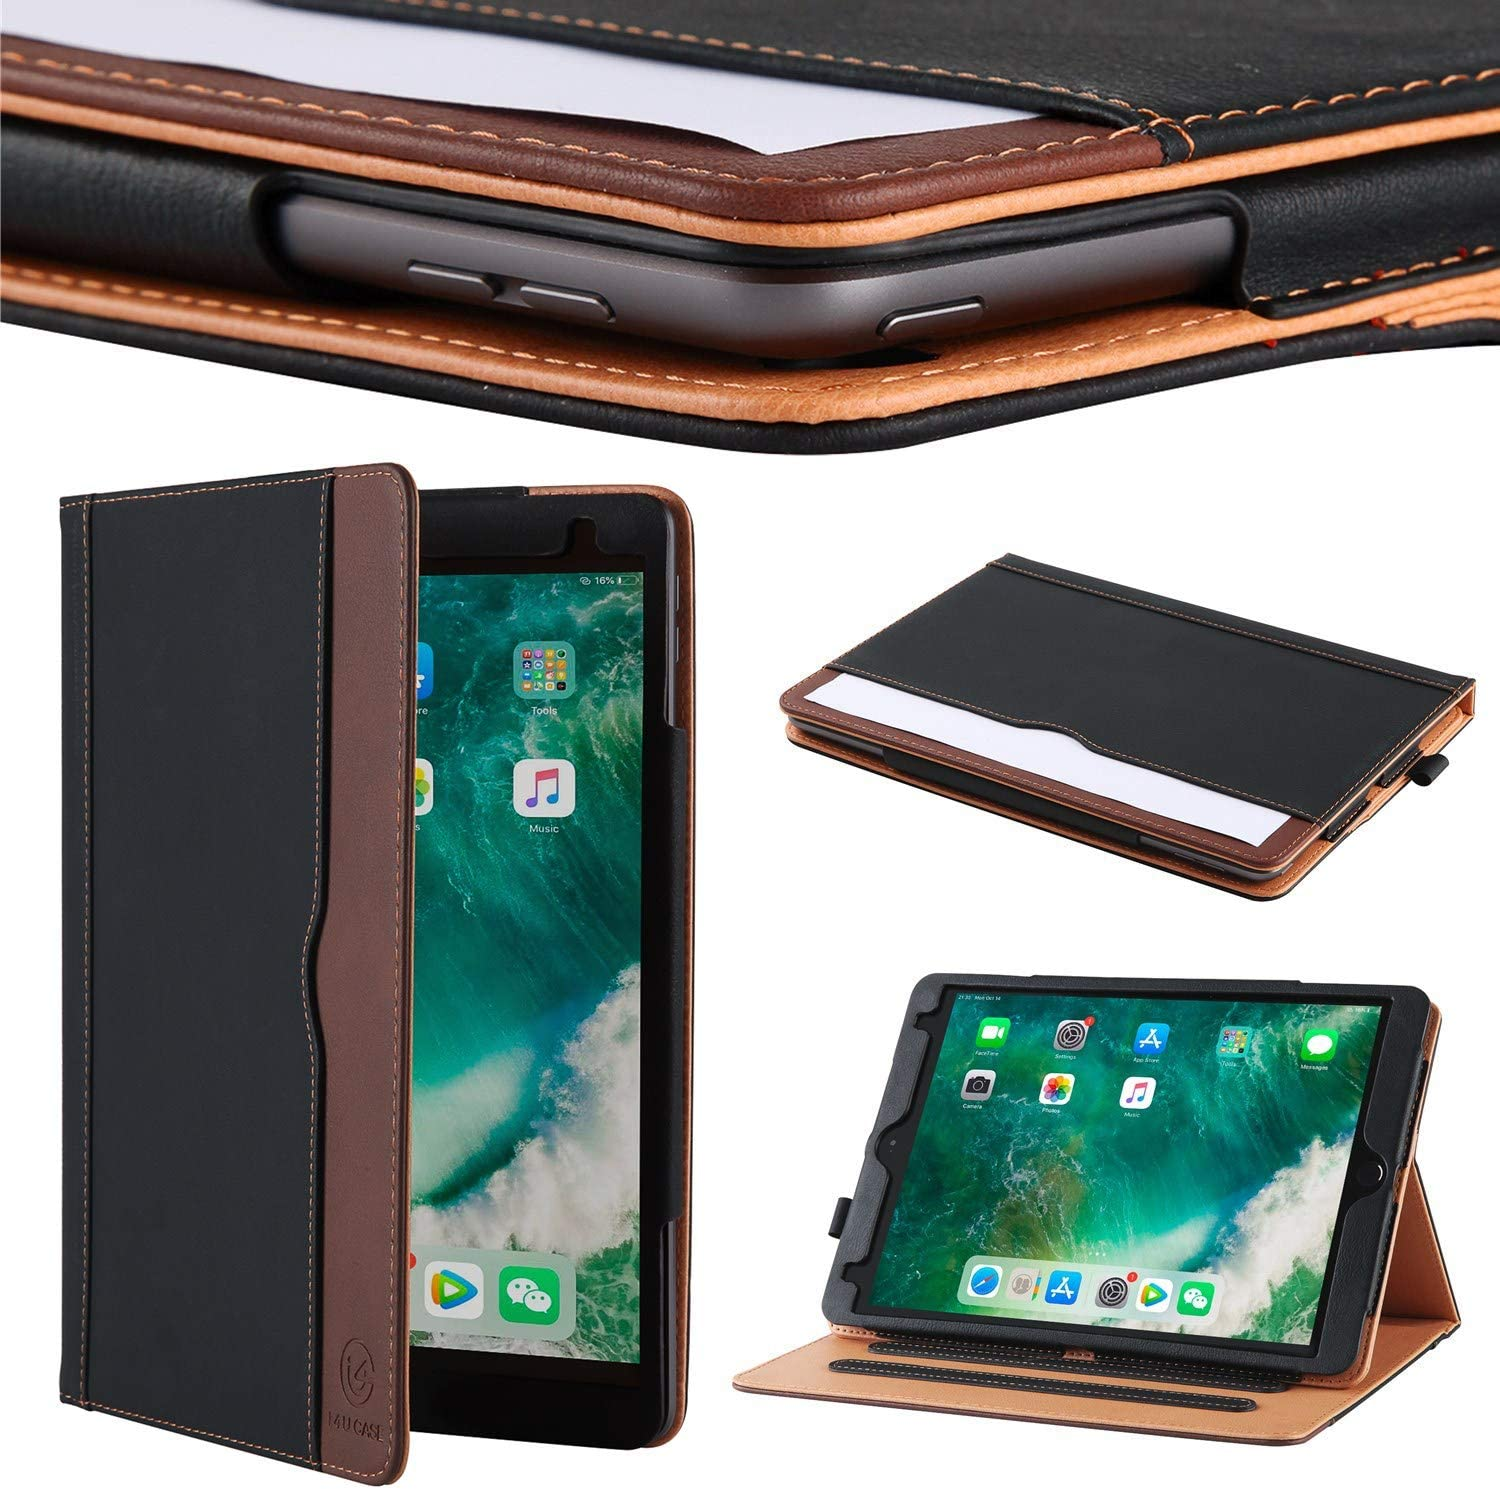 I4Ucase Apple iPad 10.2 Inch 2019/2020 (7th/8th Generation) Case Soft Leather Stand Folio Case Cover for iPad 10.2 Inch,Multiple Viewing Angles,Auto Sleep/Wake,Document Pocket (Black/Brown)